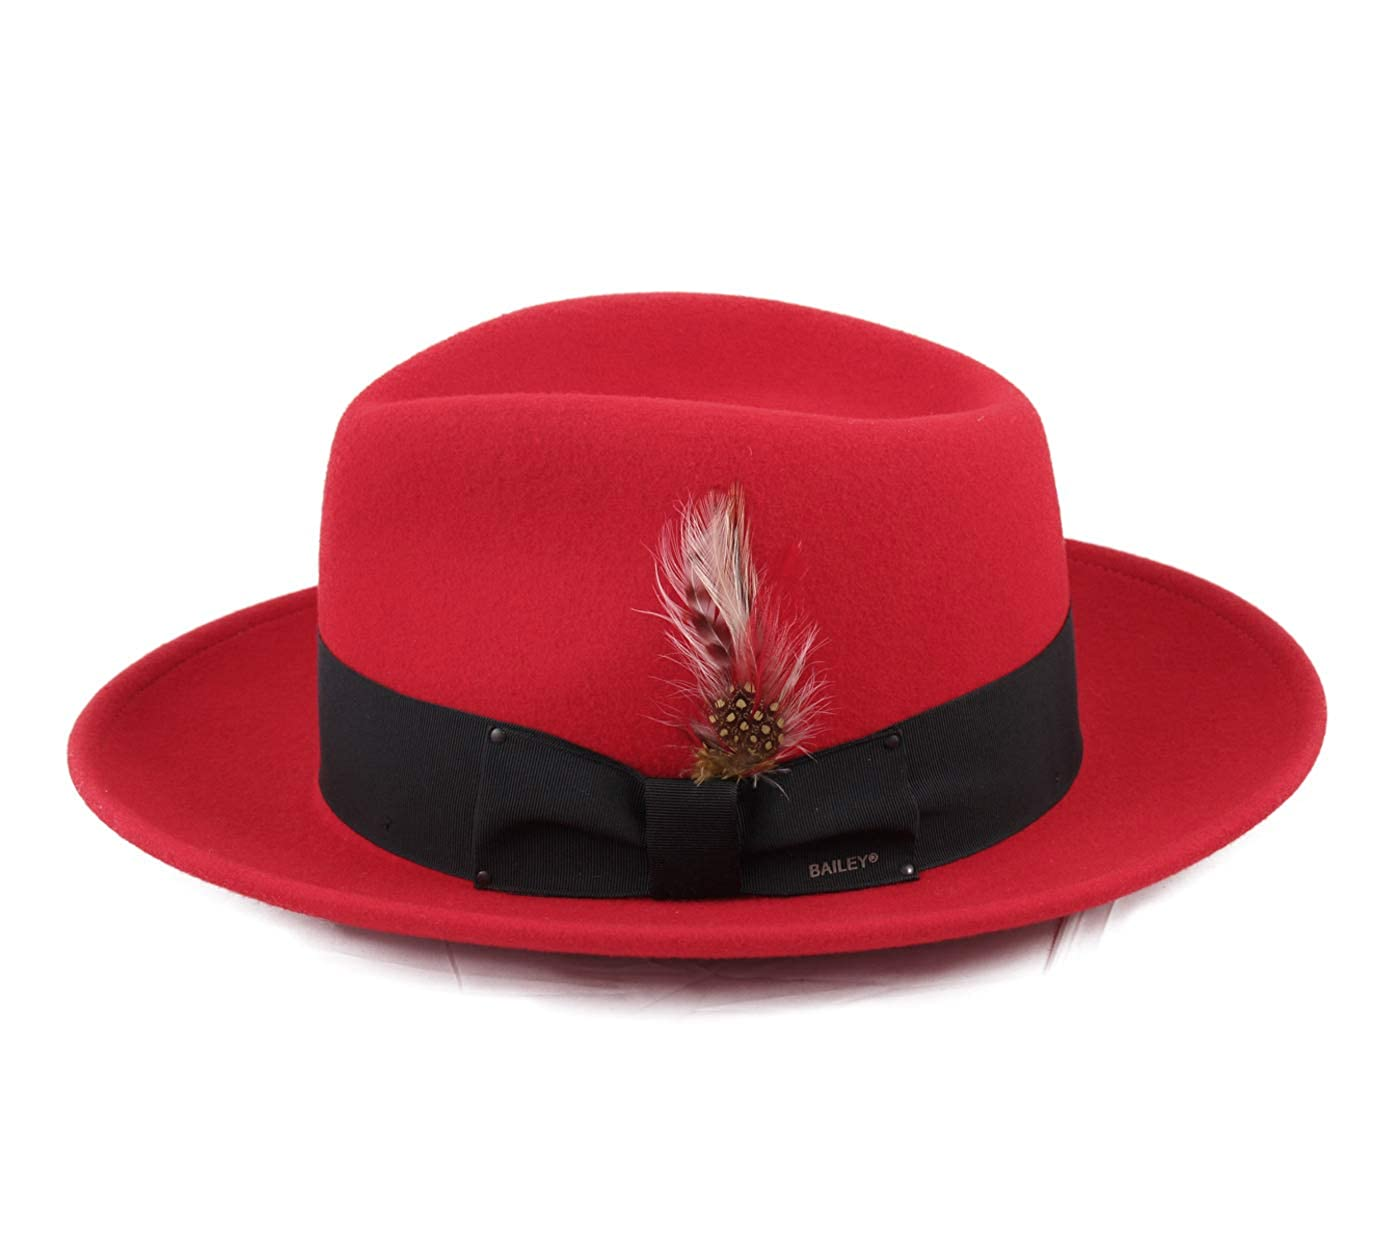 05557db37a3 Bailey of Hollywood Men s Fedora Wool Felt Fedora Hat Packable at Amazon  Men s Clothing store